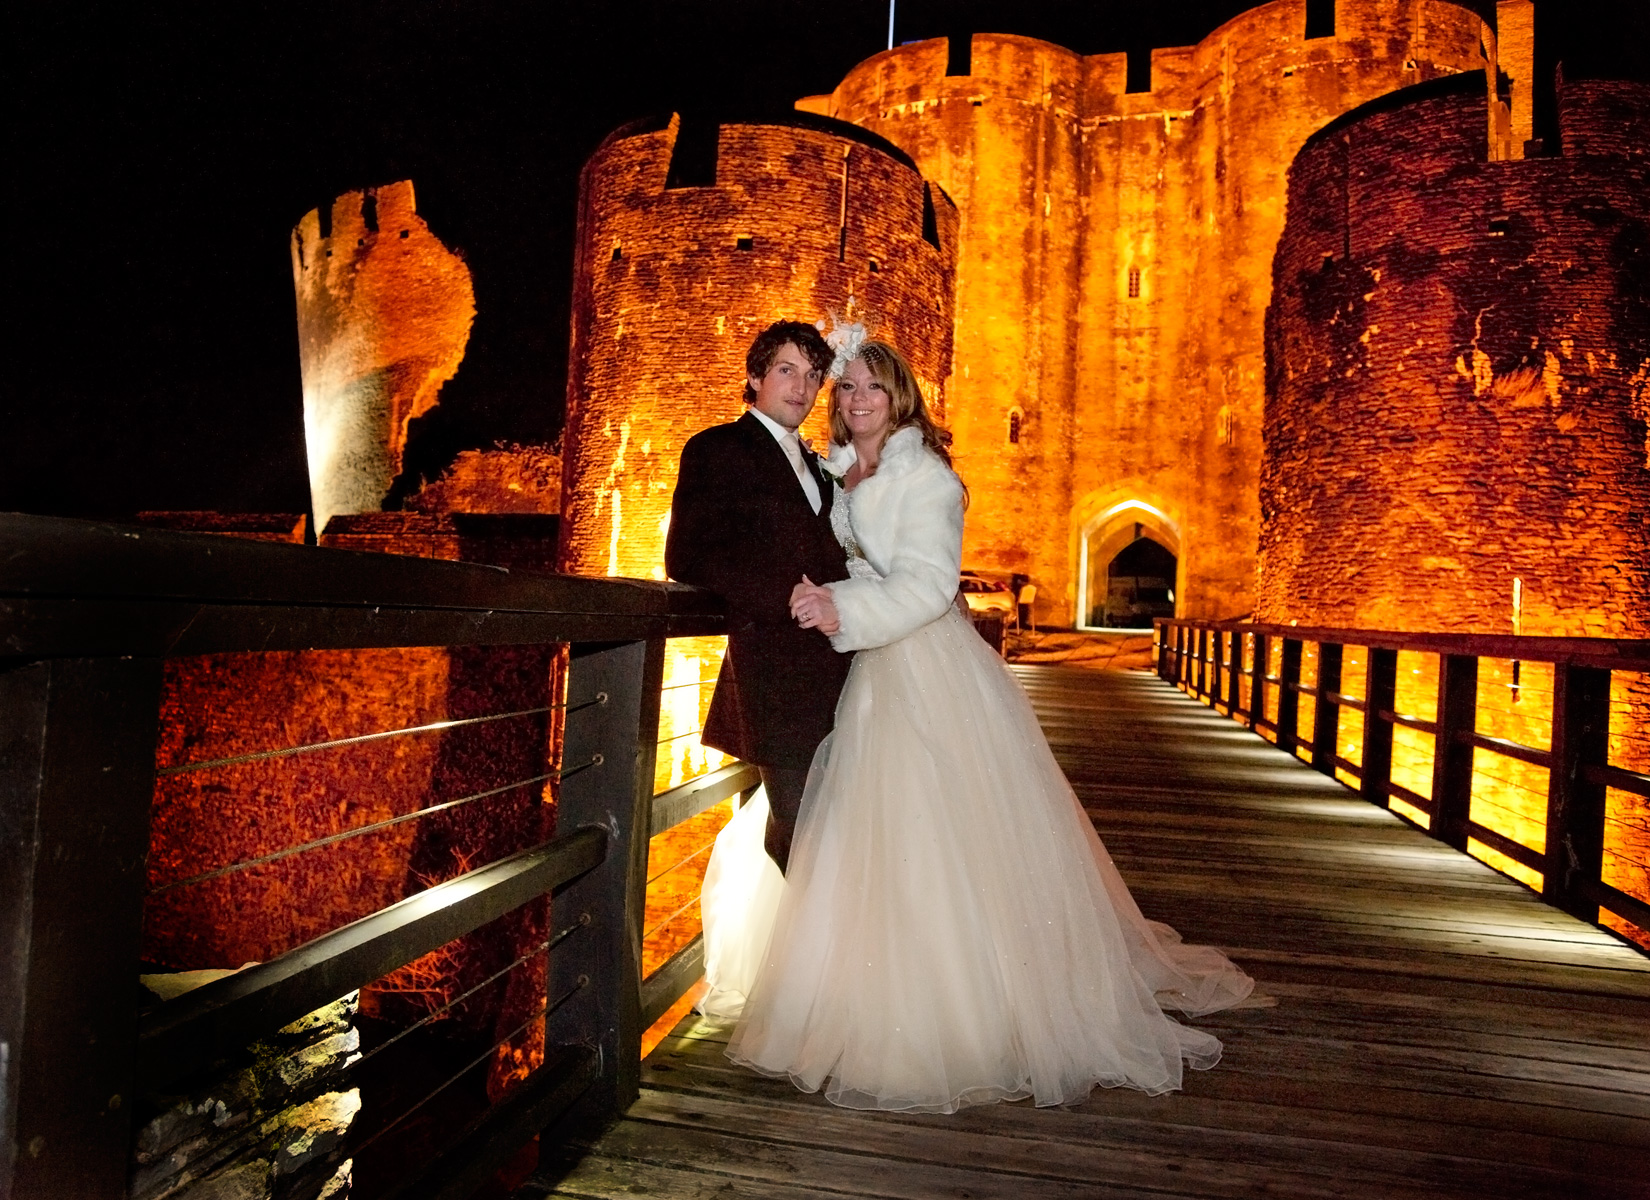 Winter-weddings-bride-groom-caerphilly-castle-floodlit-south-wales-winter-wedding-photography